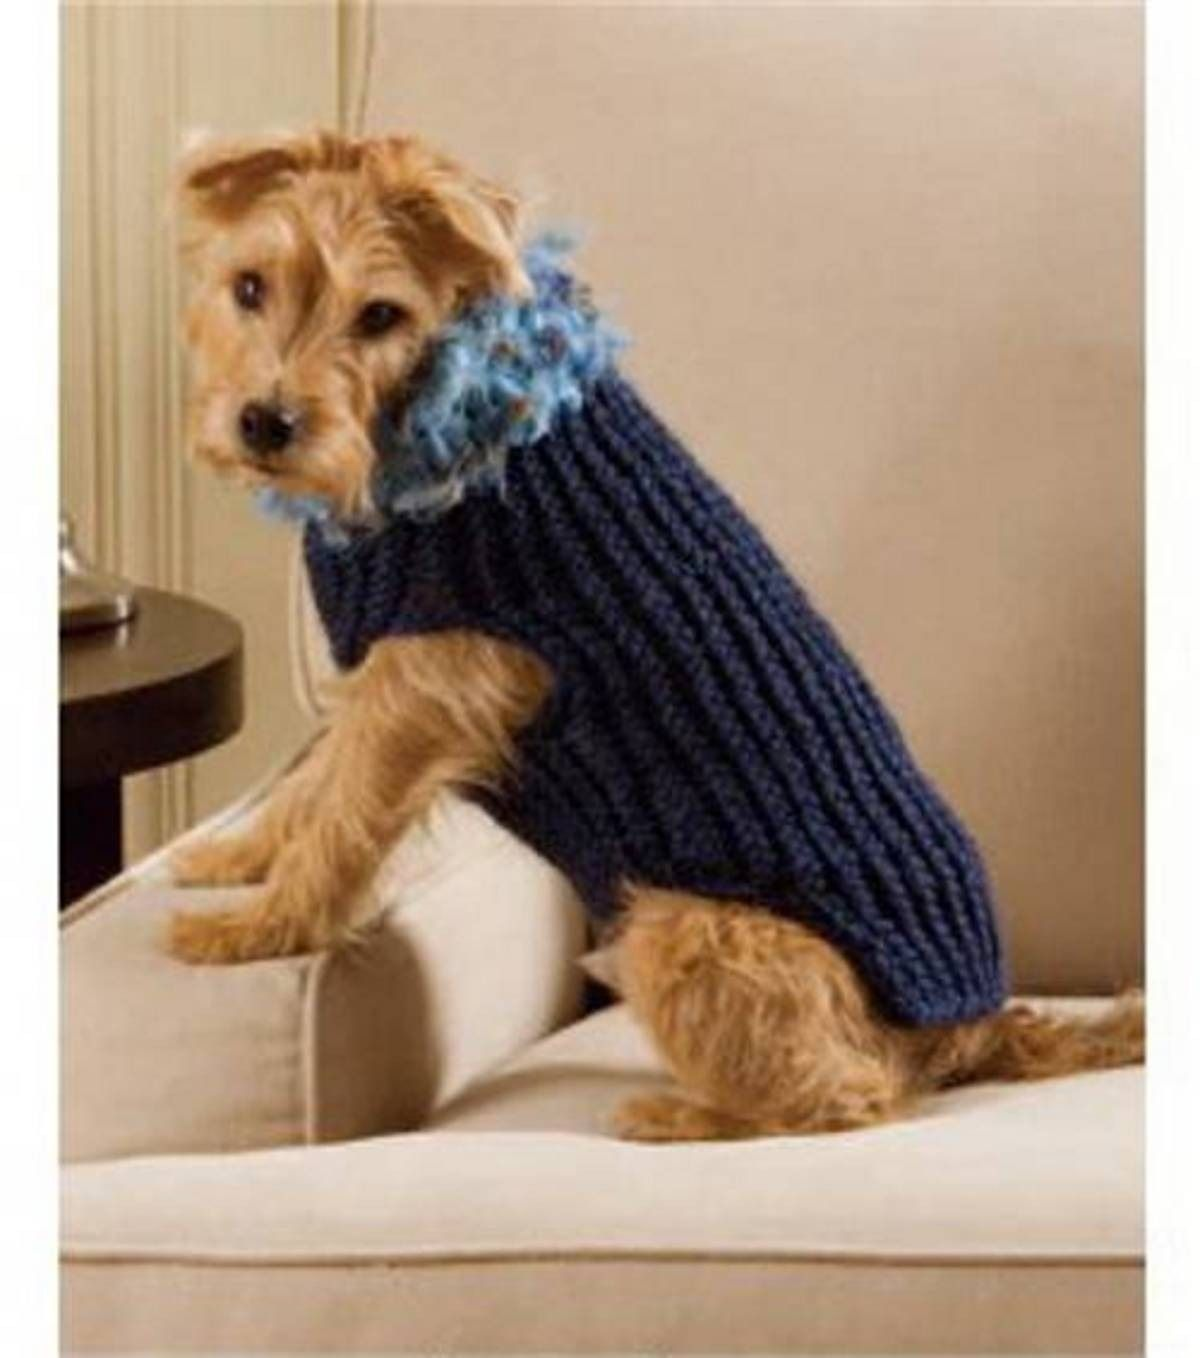 DIY Easy-To-Loom Dog Sweater | A Little Fur Baby Love | Pinterest ...